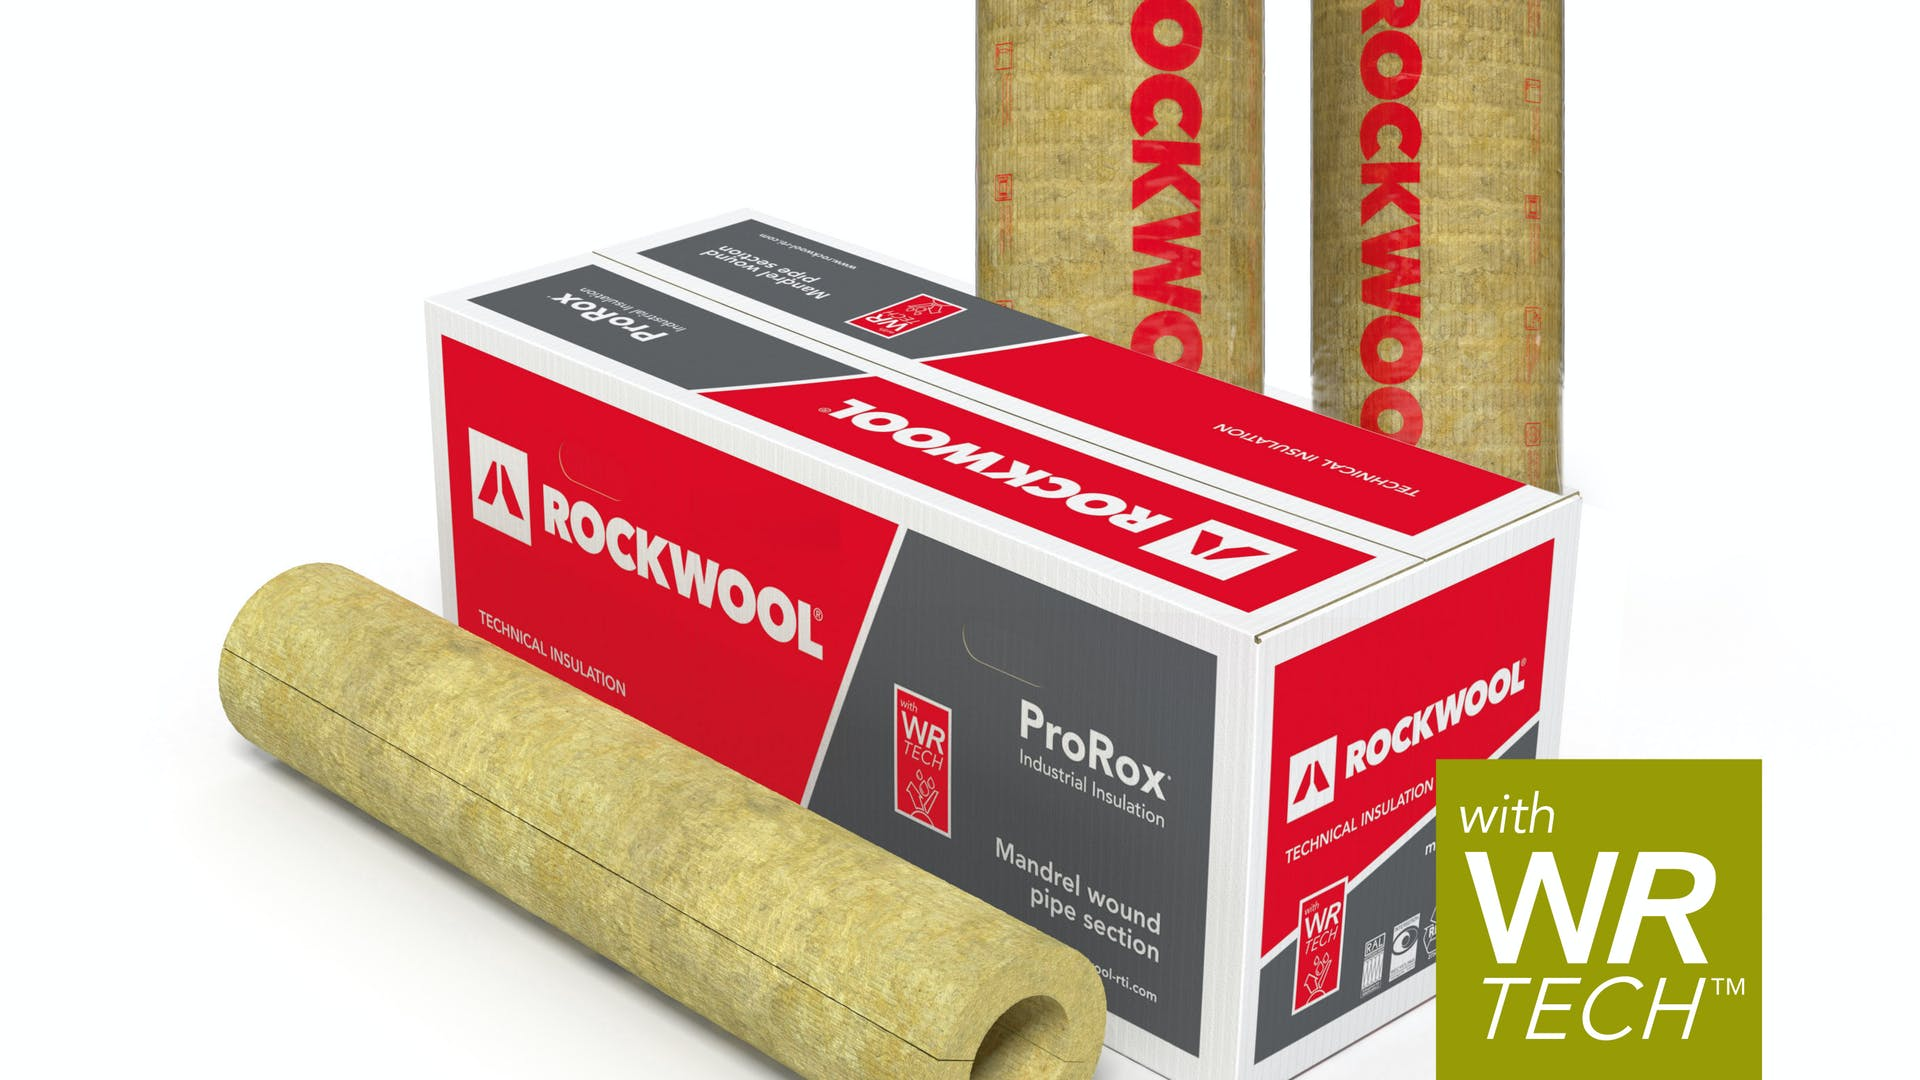 ProRox, industry, industrial, product, PS, PS 970, pipe section, WR-Tech, packaging, mono product line name, carton box, WR-Tech label, 3D image, product catalogue